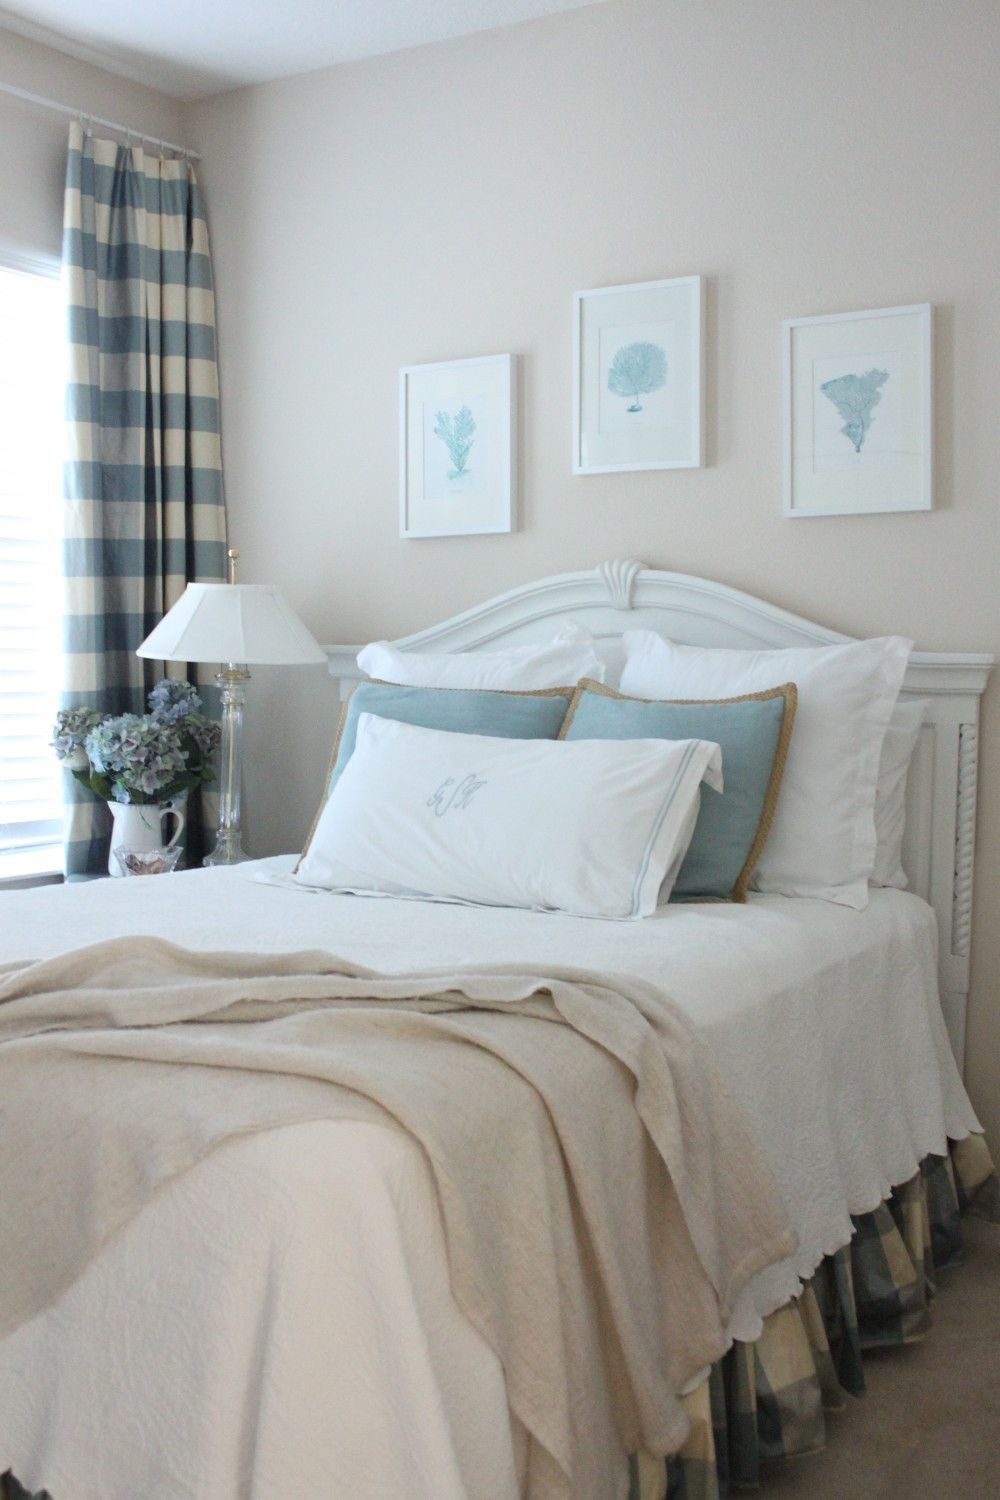 Gracious Guest Bedroom Decorating Ideas: How To Create A Gracious Guest Bedroom (With Images)